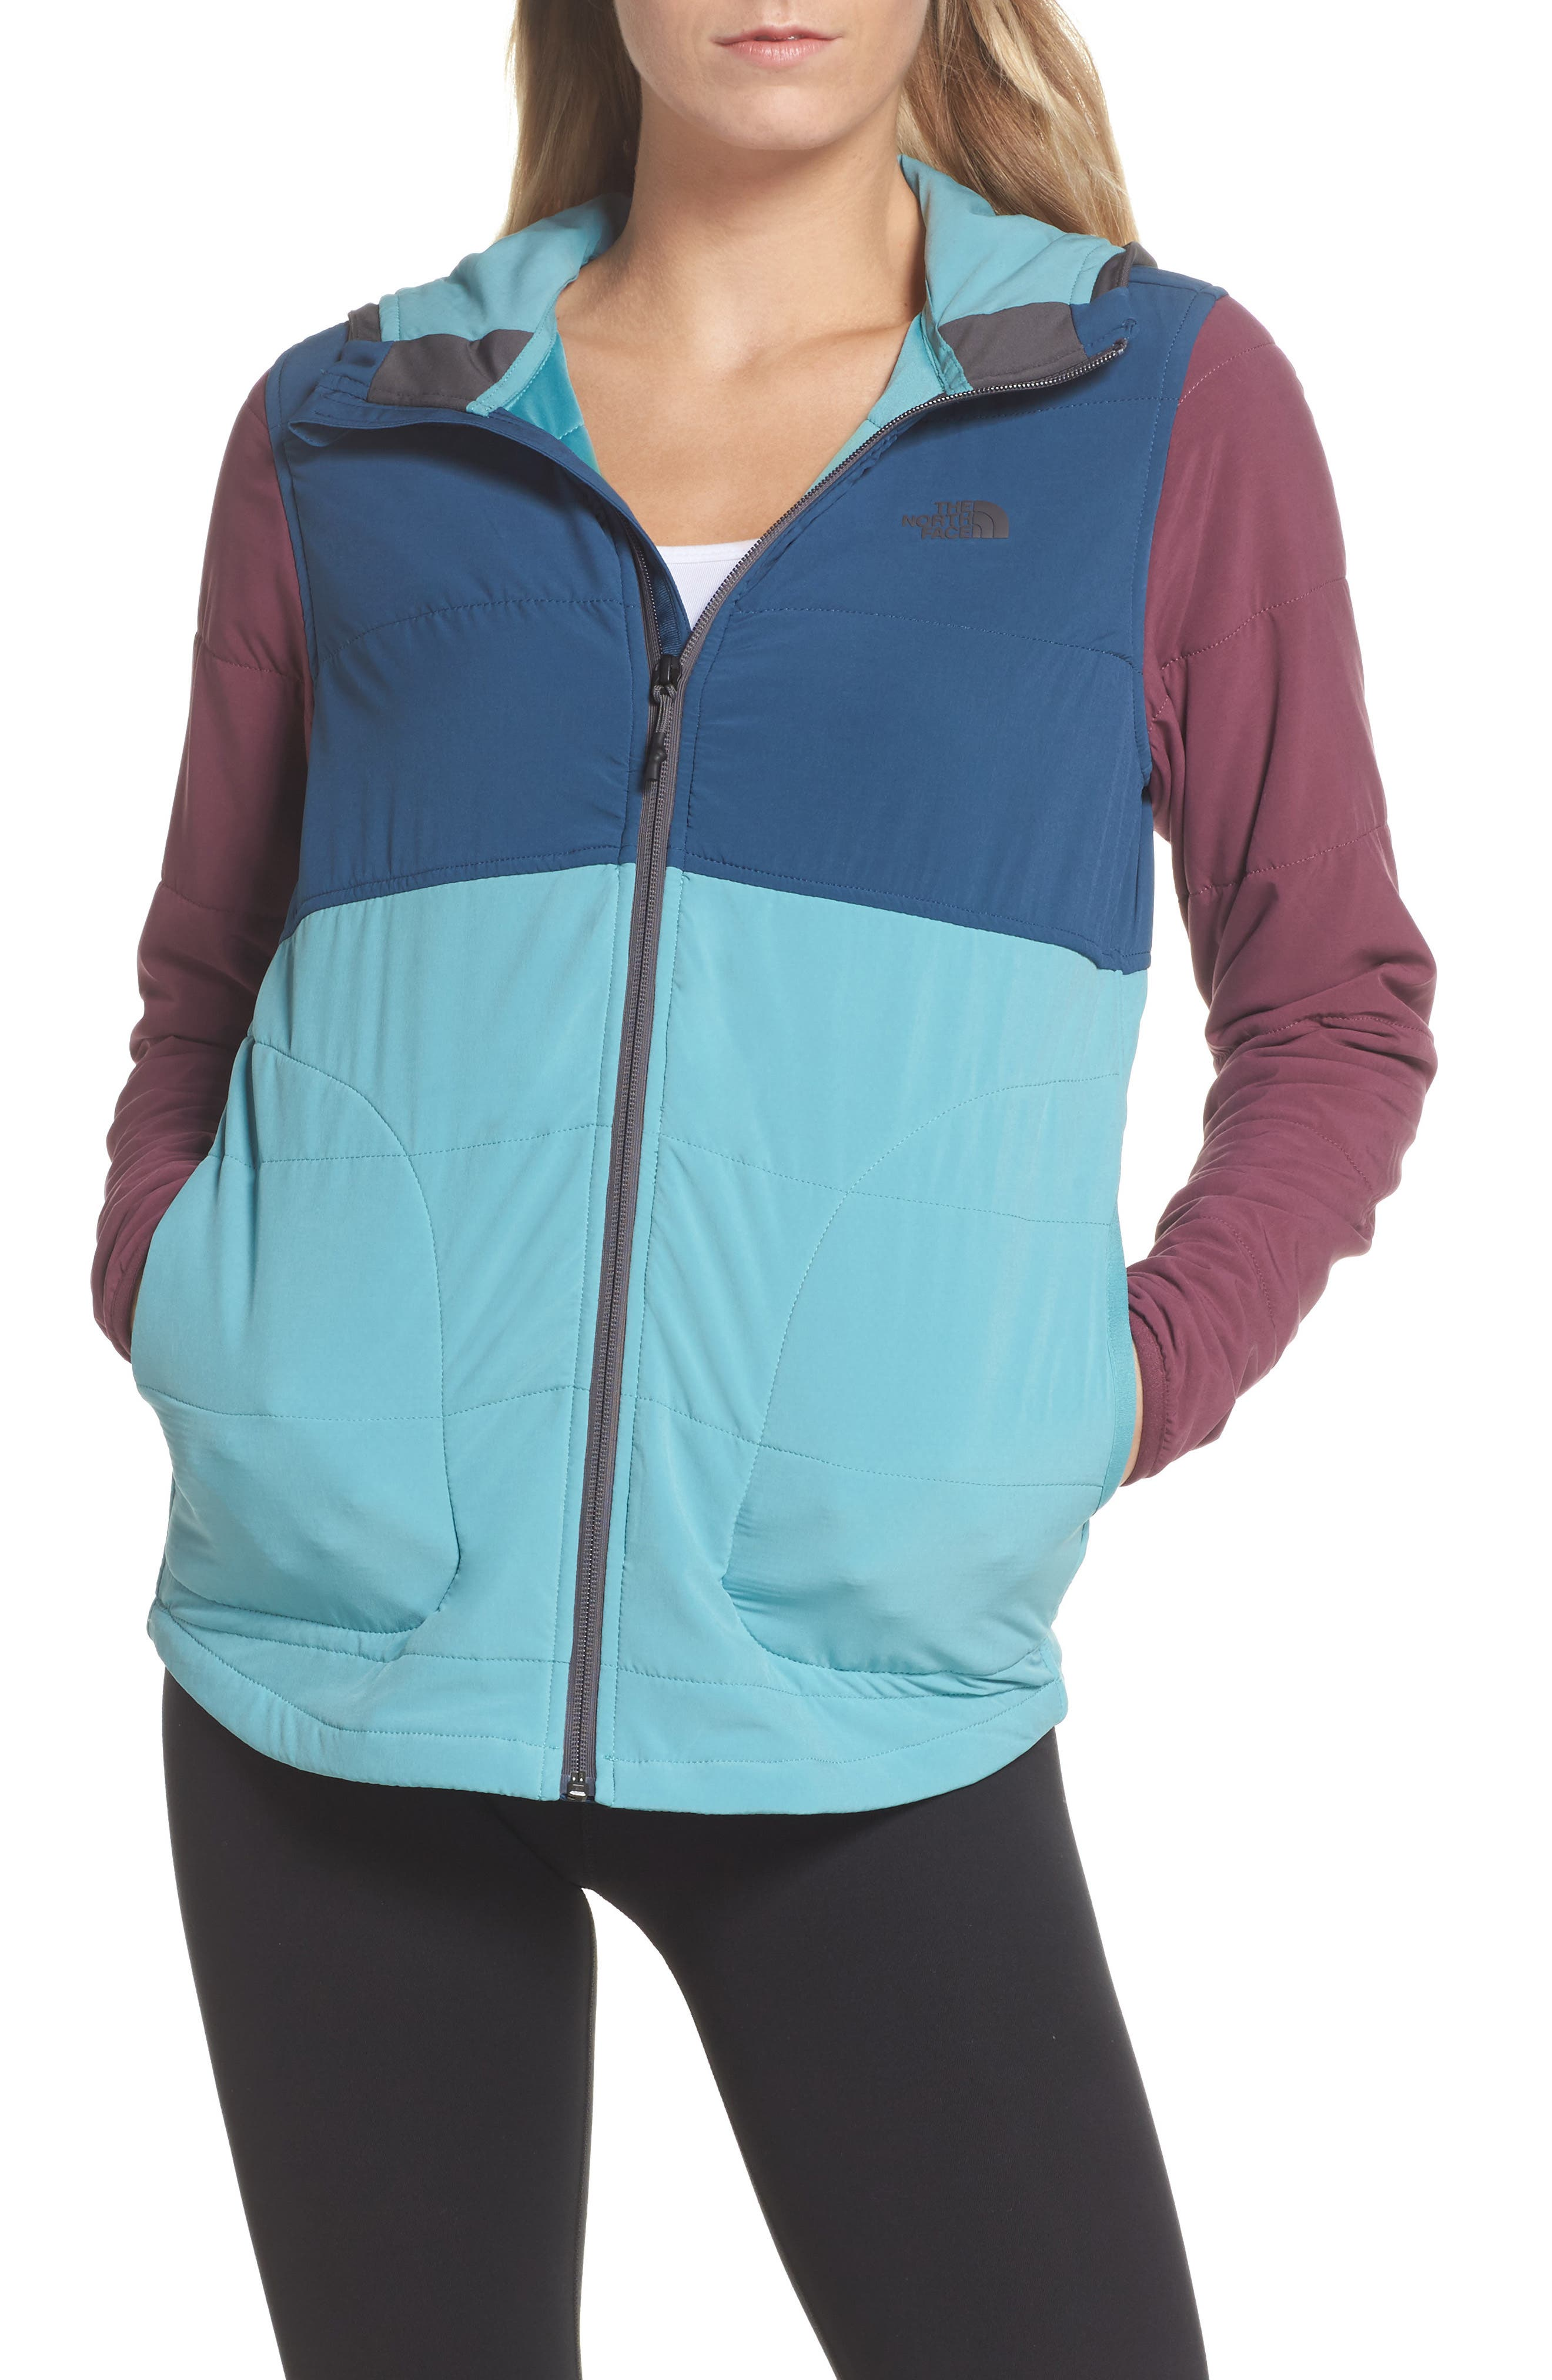 Mountain Sweatshirt Insulated Hooded Jacket,                         Main,                         color, Bristol Blue Multi